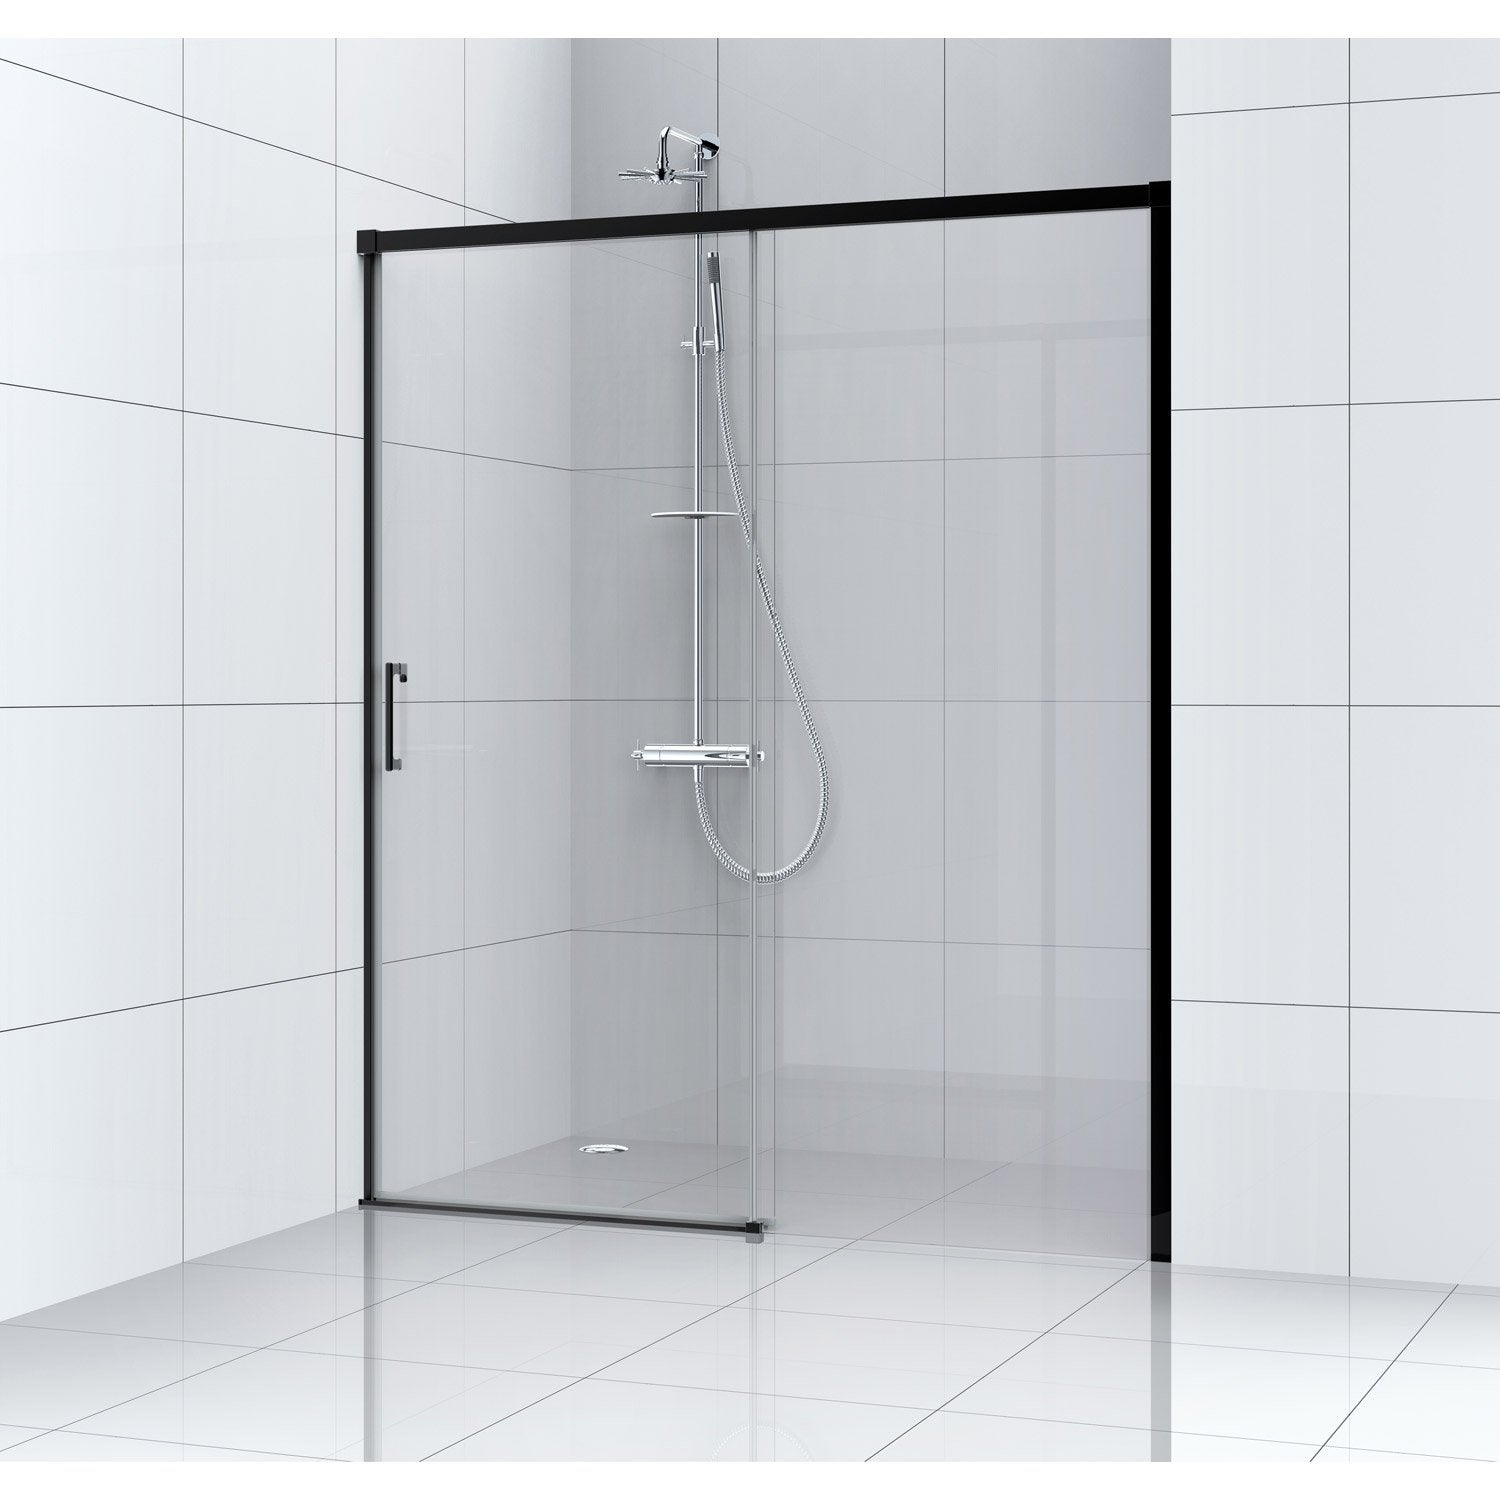 Porte de douche coulissante l 100 cm verre transparent for Porte de douche 100